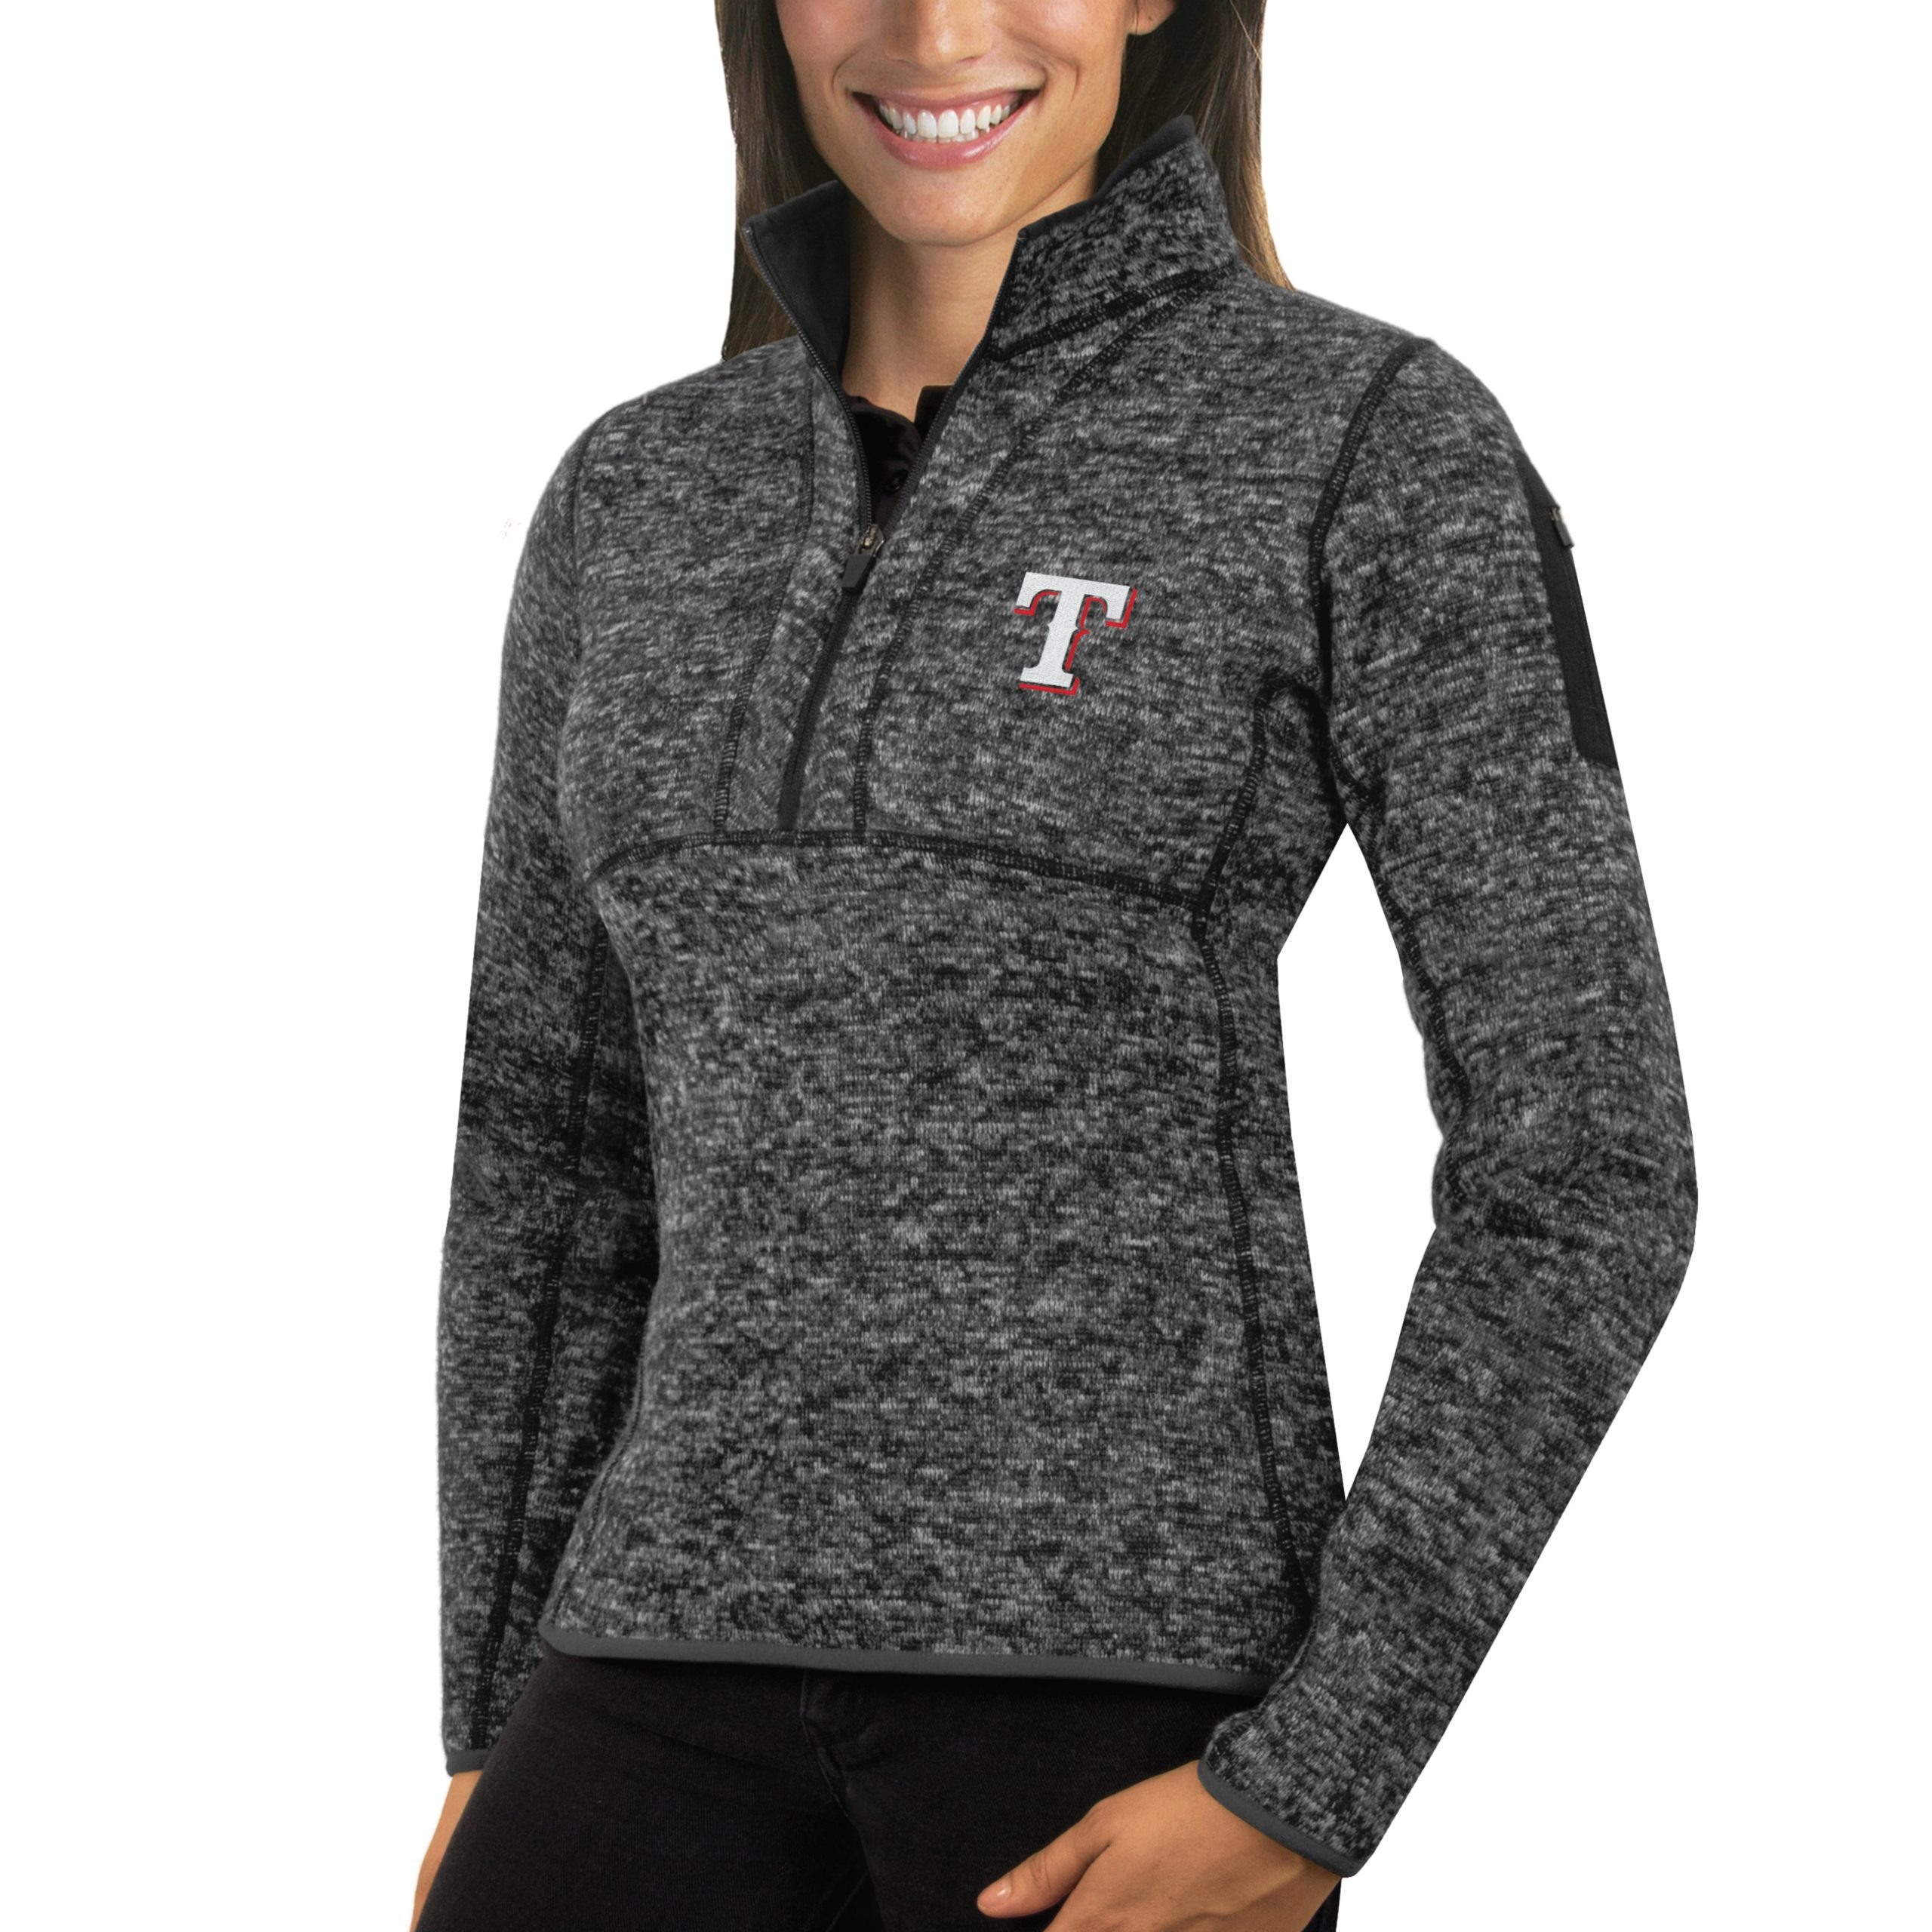 Texas Rangers Antigua Women's Fortune Half-Zip Pullover Sweater - Heathered Charcoal